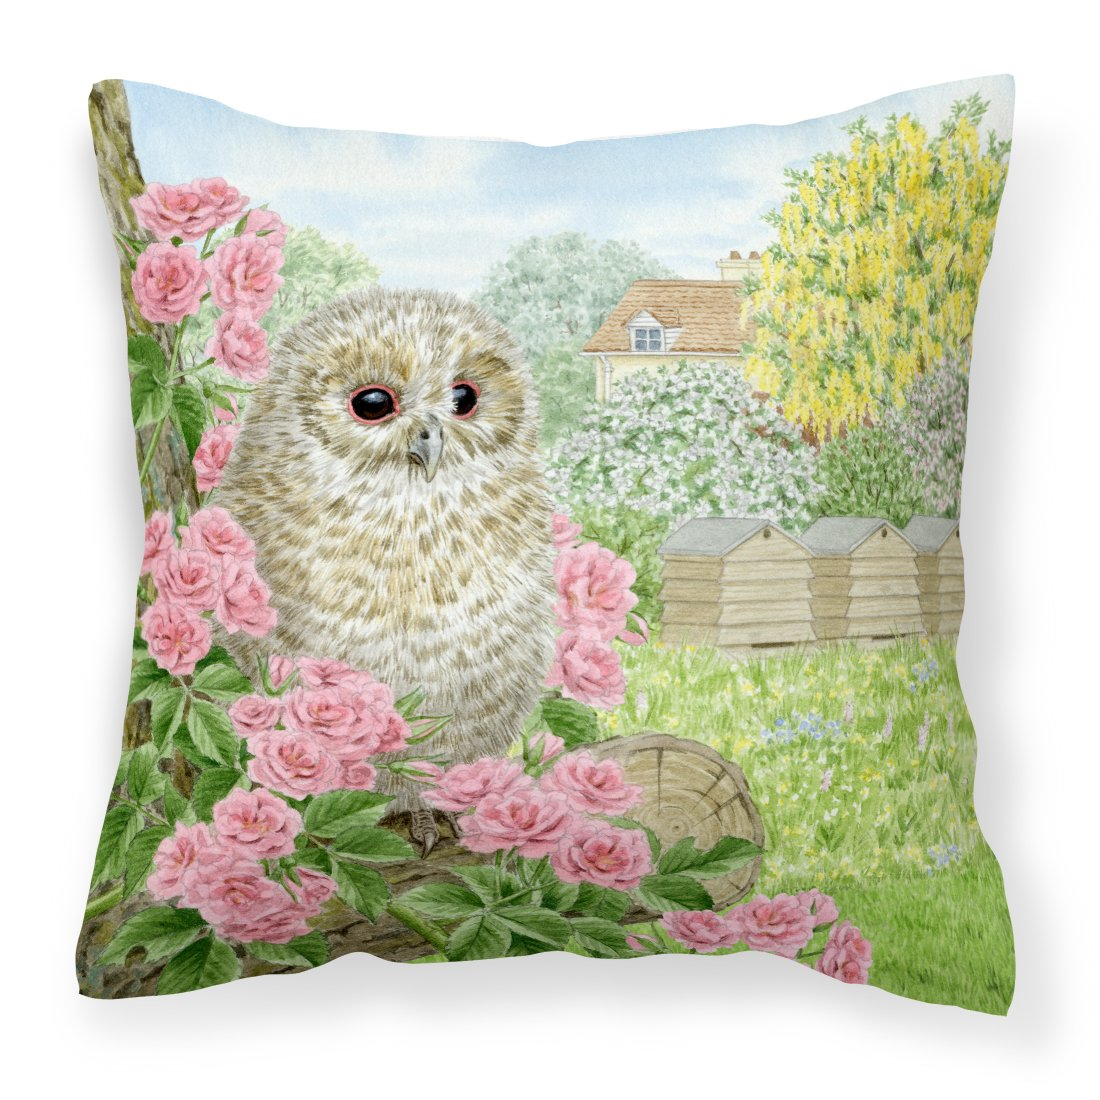 Tawny Owlet by Sarah Adams Canvas Decorative Pillow by Caroline's Treasures